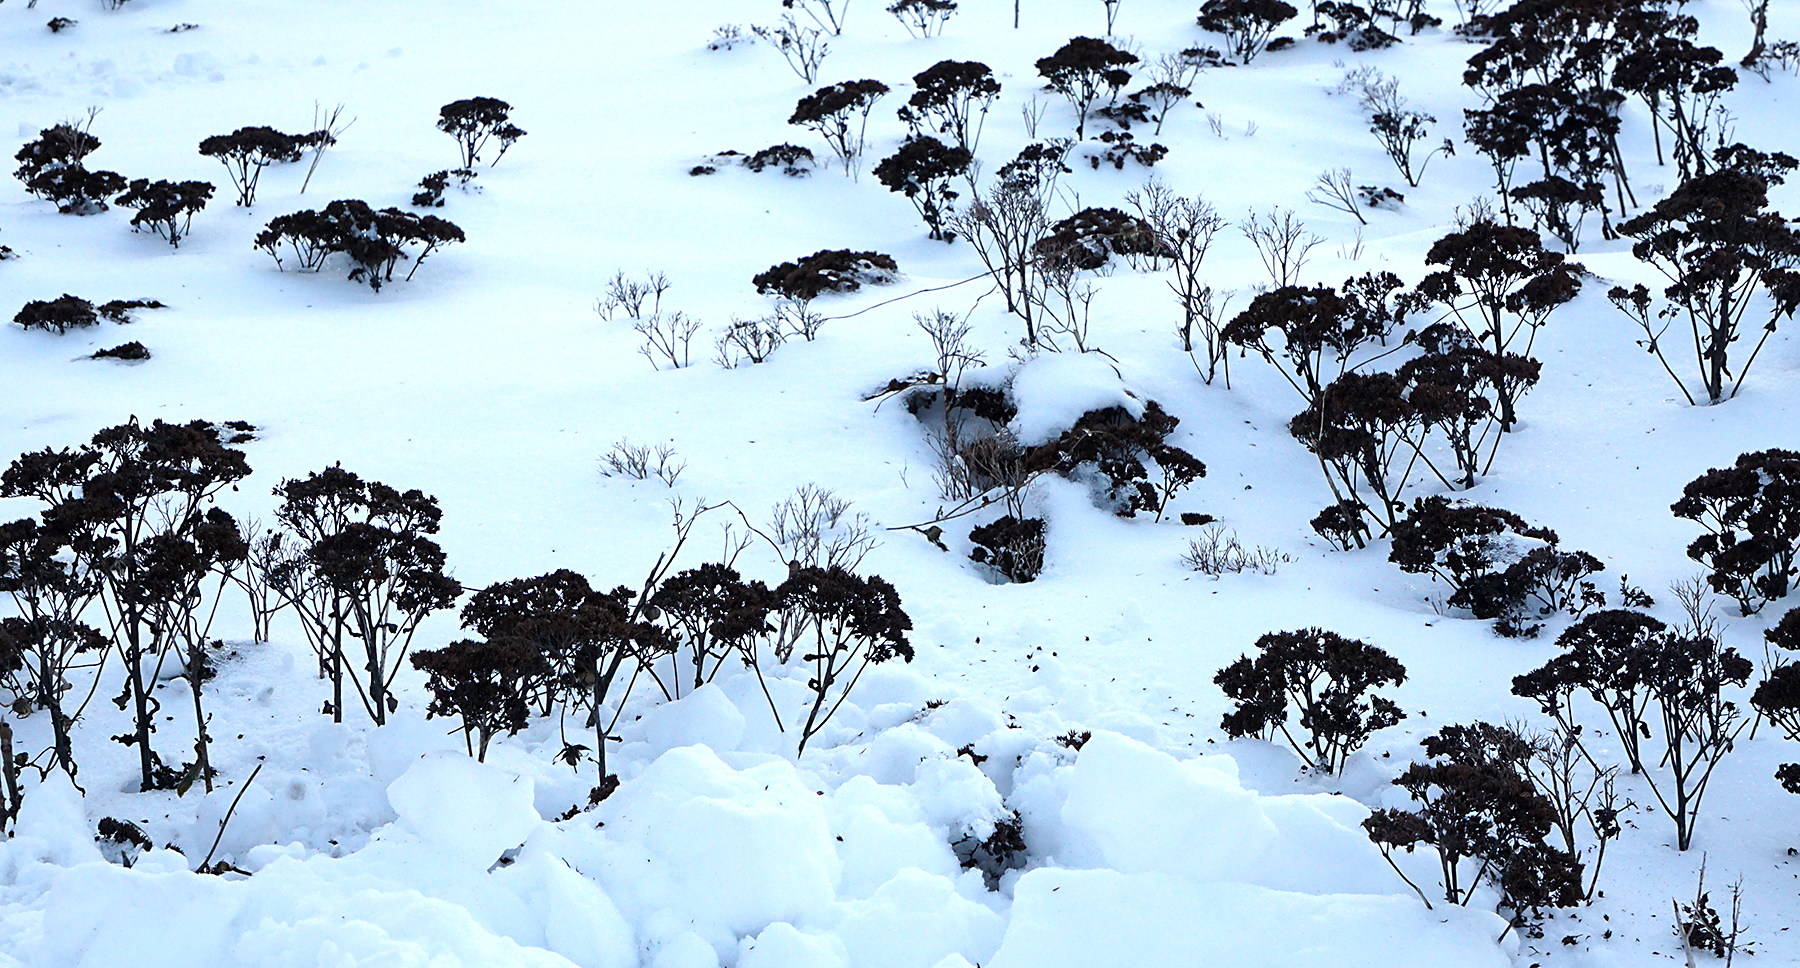 I love how these little seed heads poking out of the snow resemble a landscape of trees blanketed in snow.